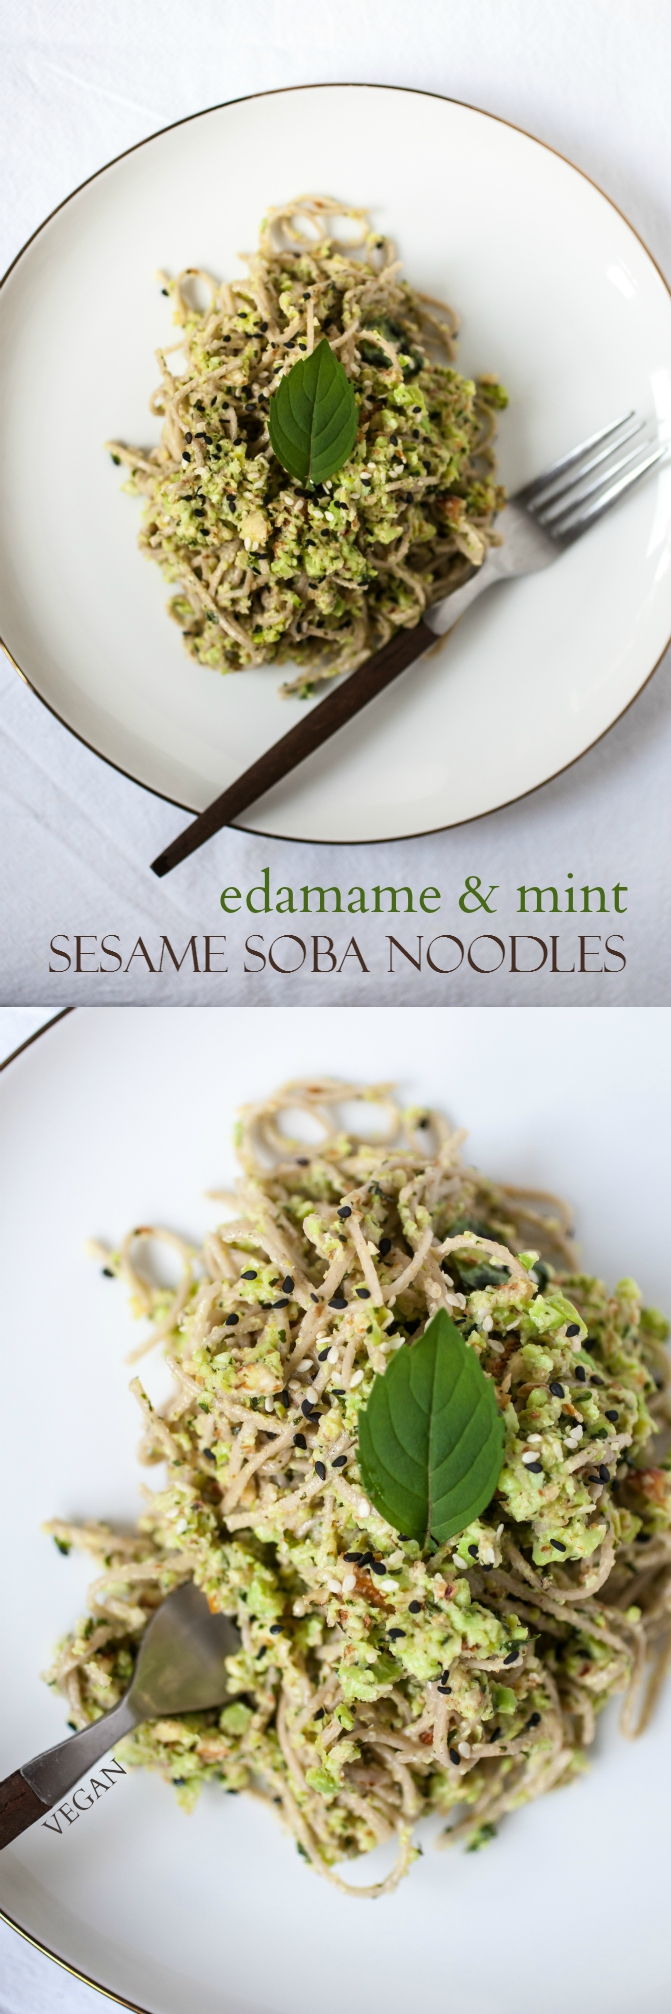 Edamame & Mint Sesame Soba Noodles + My Near & Far Cookbook Review - Produce On Parade - A quick and very easy sesame soba recipe featuring fresh mint, raw almonds, and protein-packed edamame with a hint of smokiness, crisp lemon, and pepper. Adapted from the cookbook Near & Far.